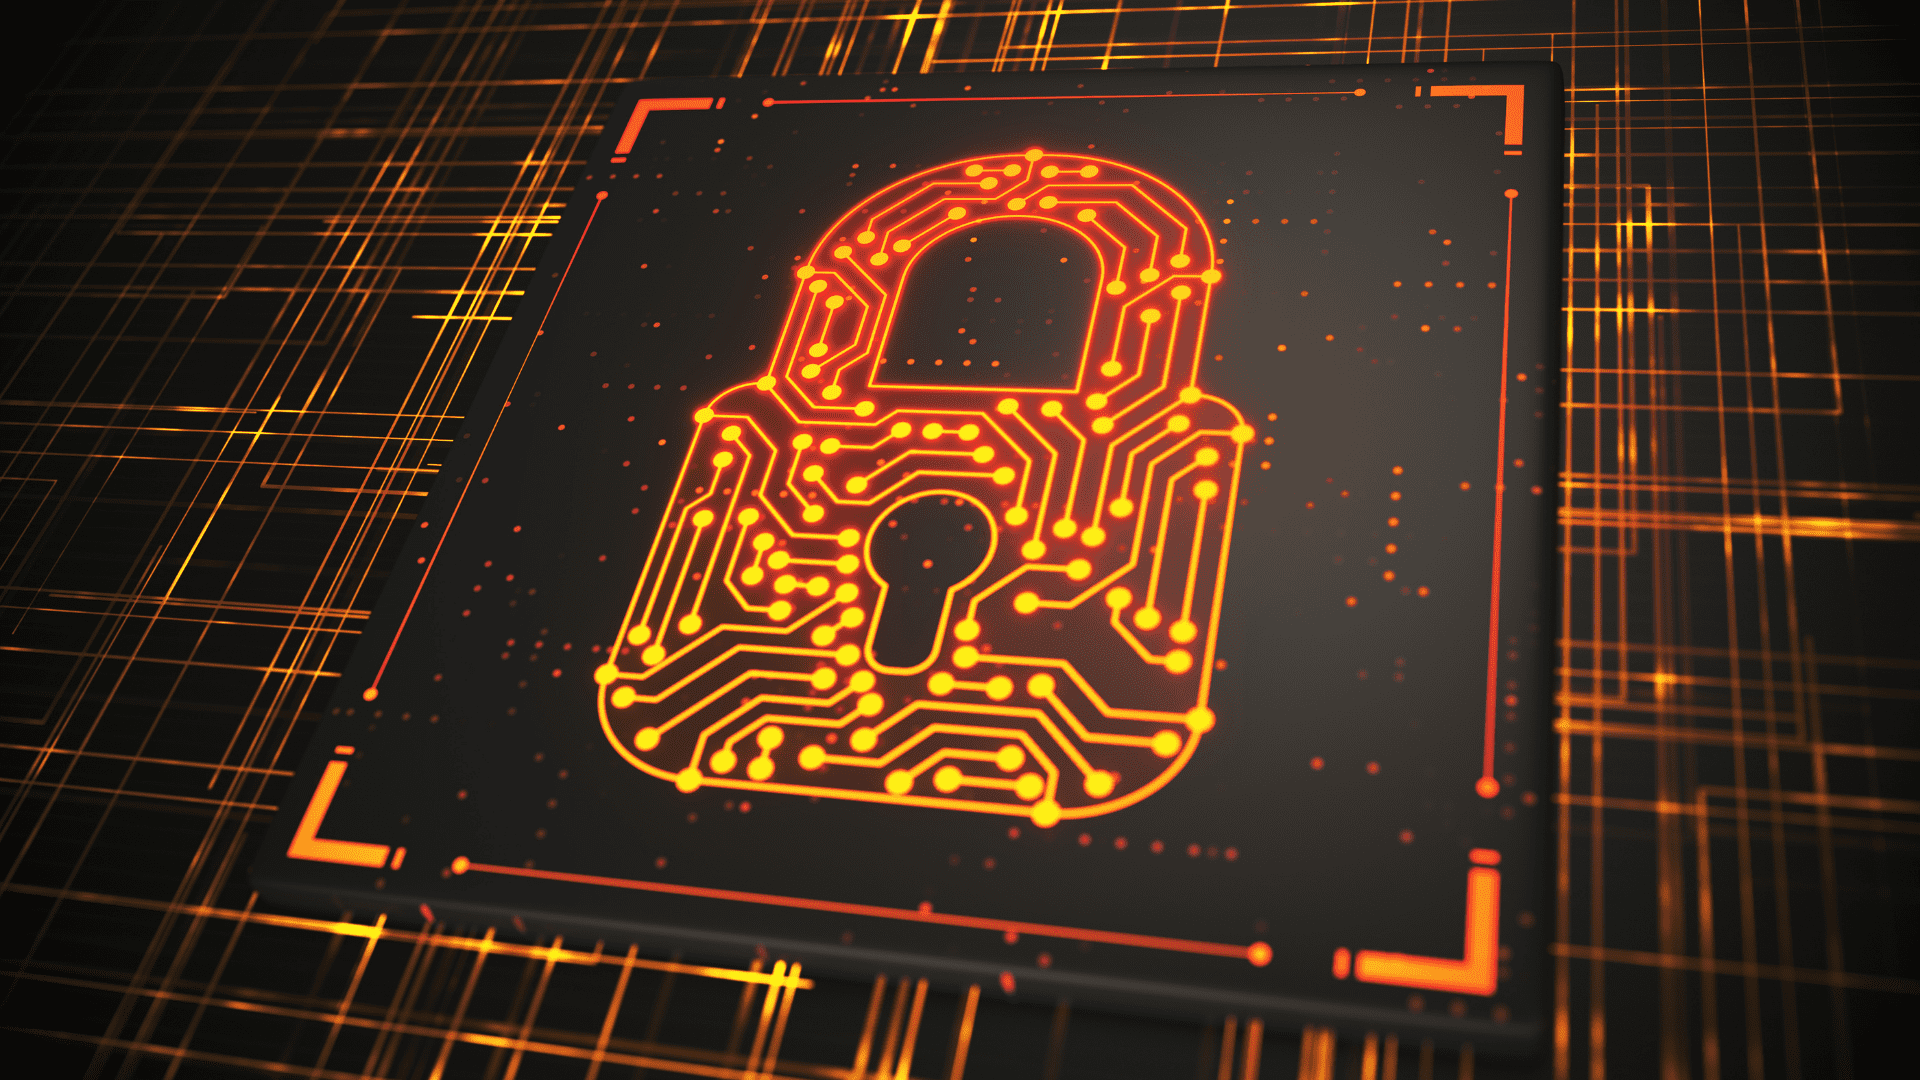 1 in 3 Employees Believe That Their Company's Cyber-security is a Moderate or Major Problem